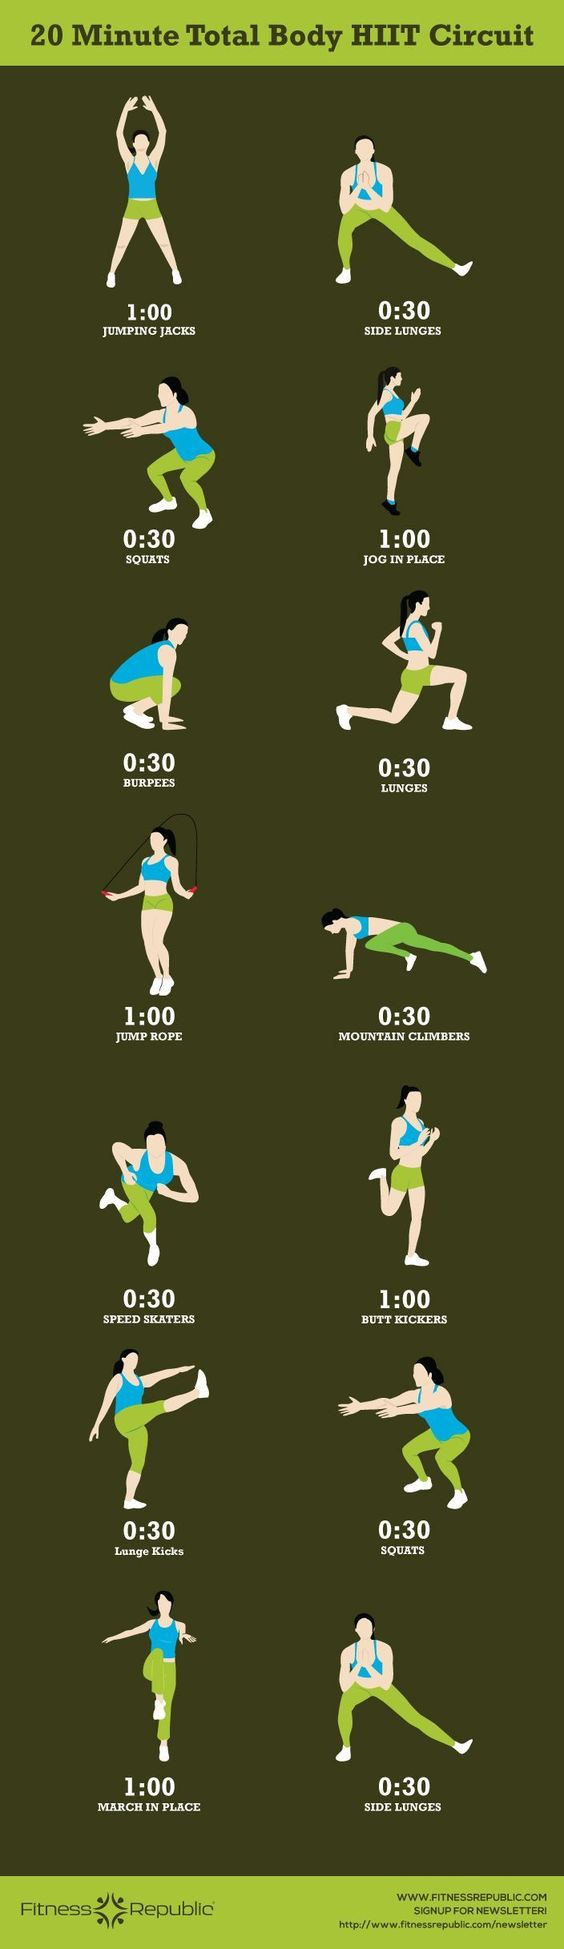 19 Intense 20 Minute Workouts That Will Destroy Your Body Fat Hour Circuit Tabata Hiit Pinterest No Excuses Workout